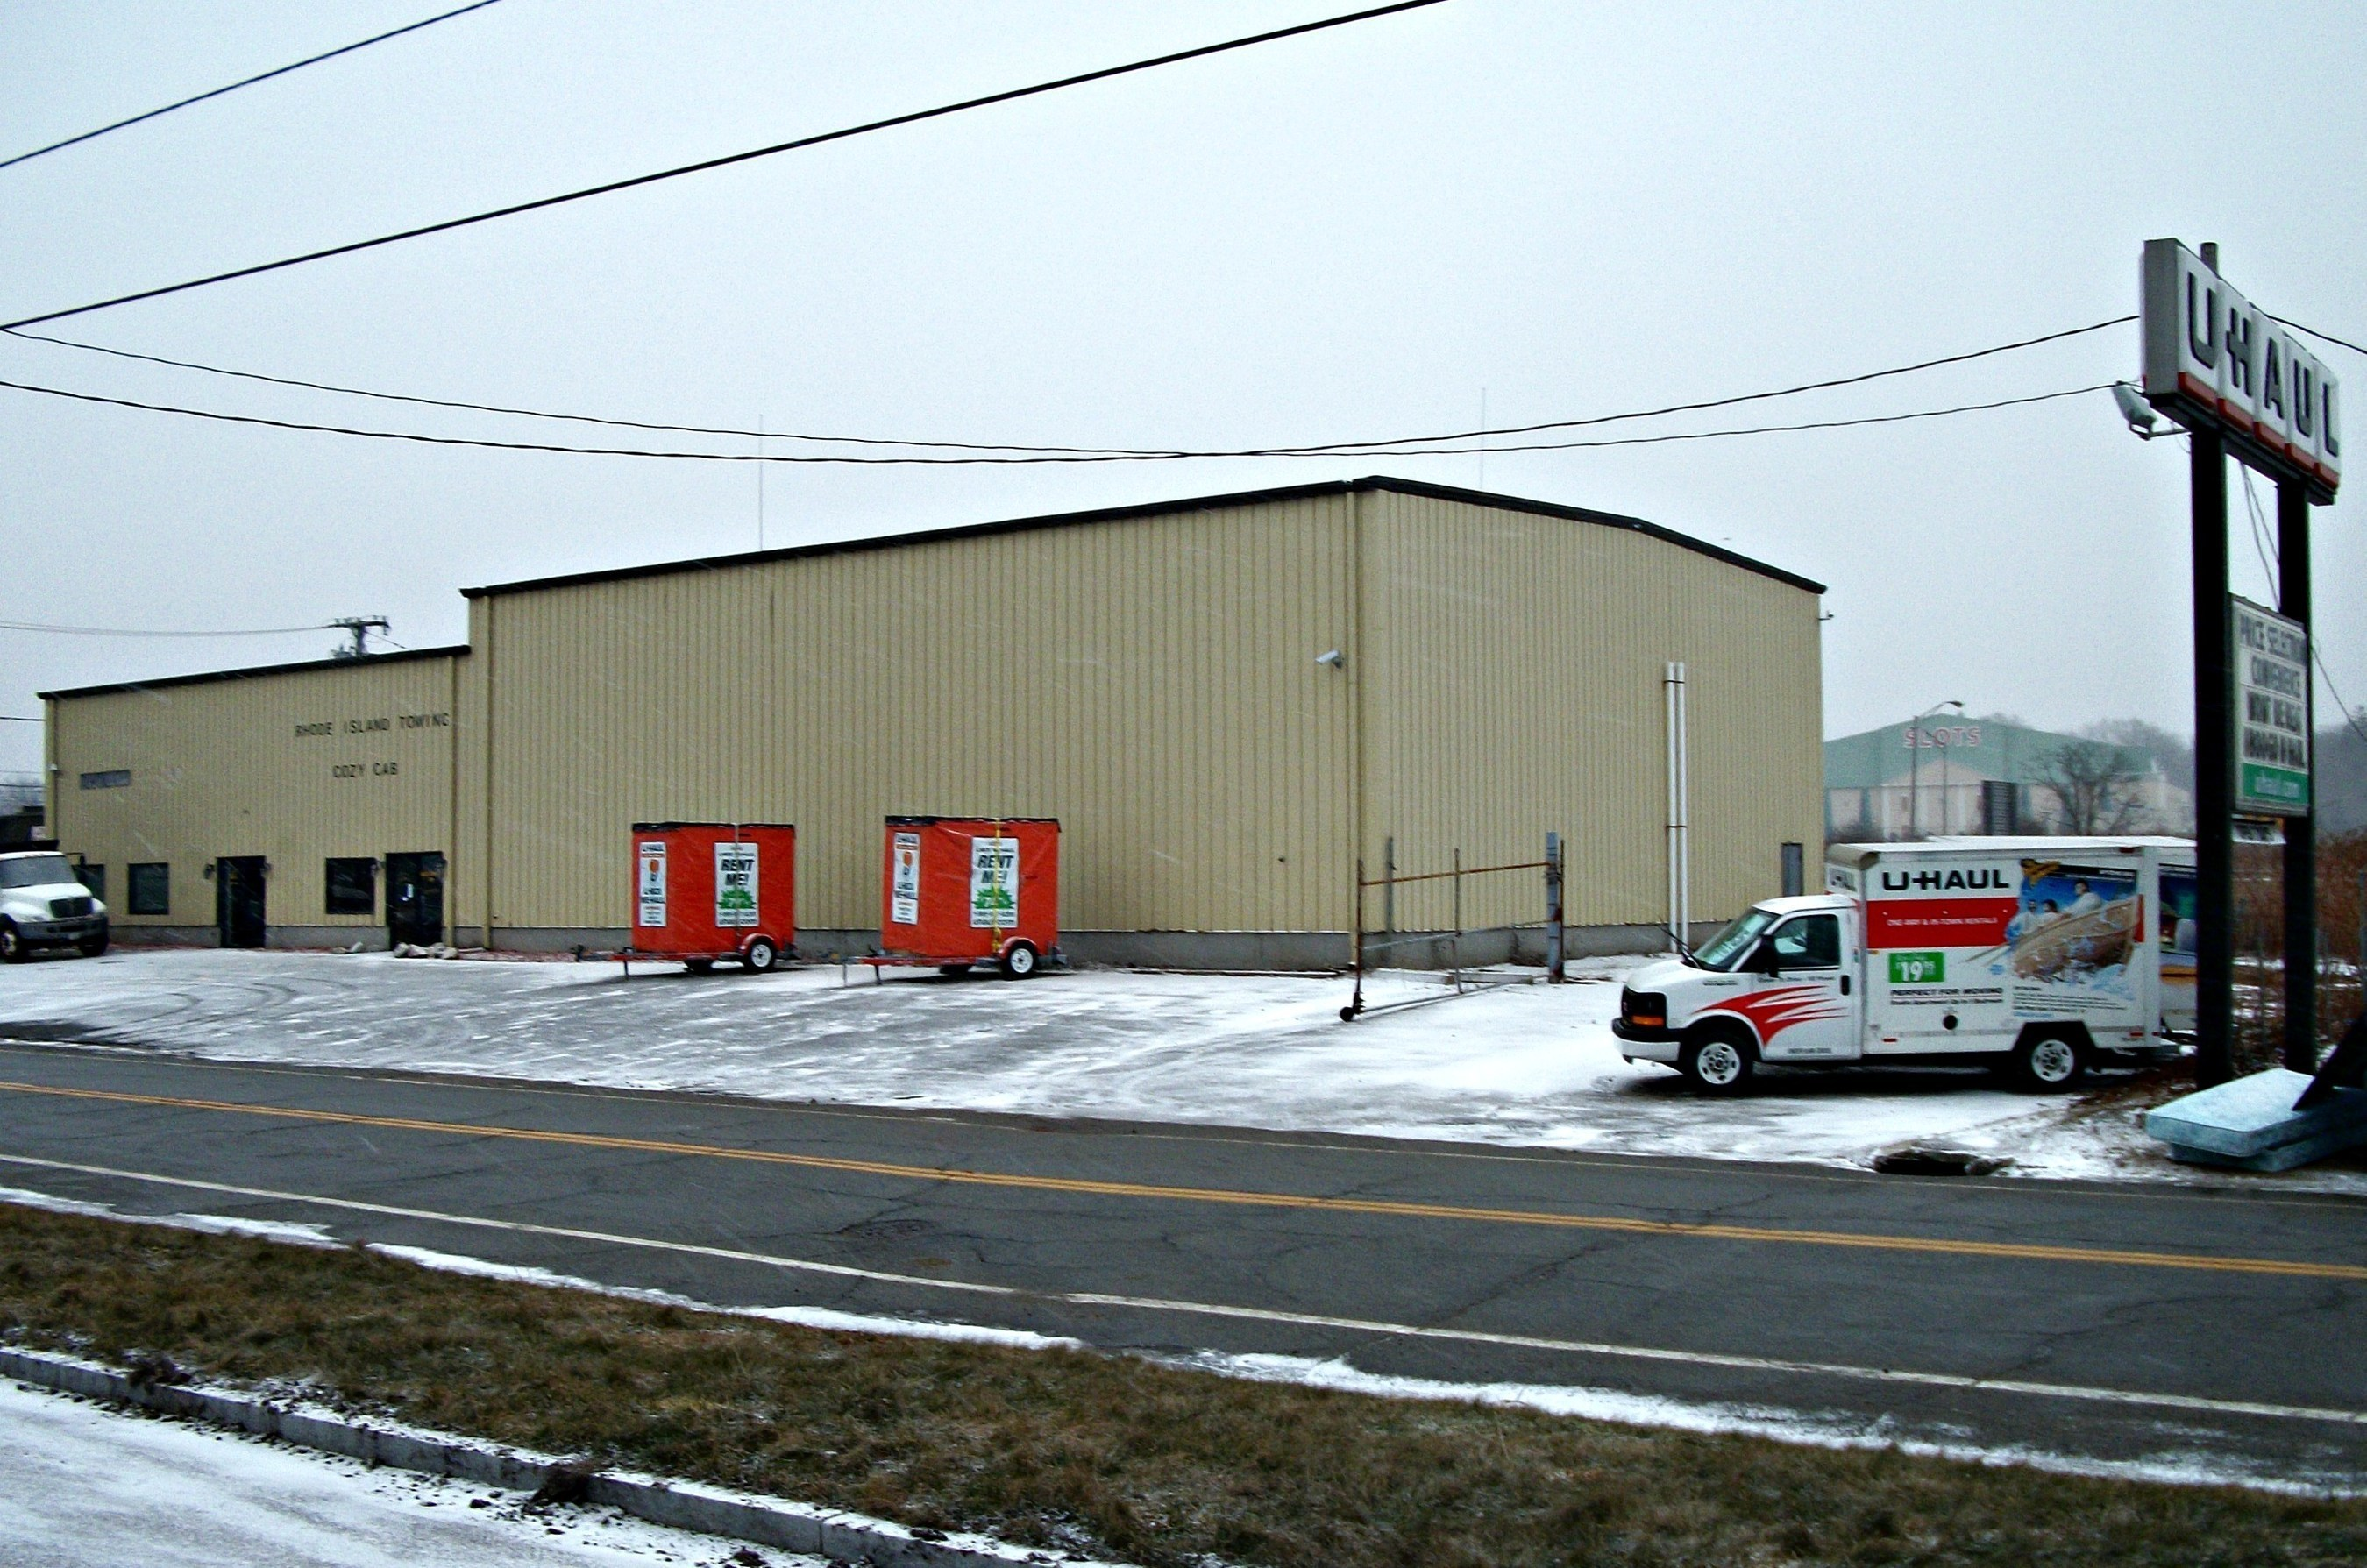 U-Haul customers in and around Newport will soon have more secure and convenient storage options with the forthcoming expansion at U-Haul Moving & Storage of Newport at 111 Connell Hwy.